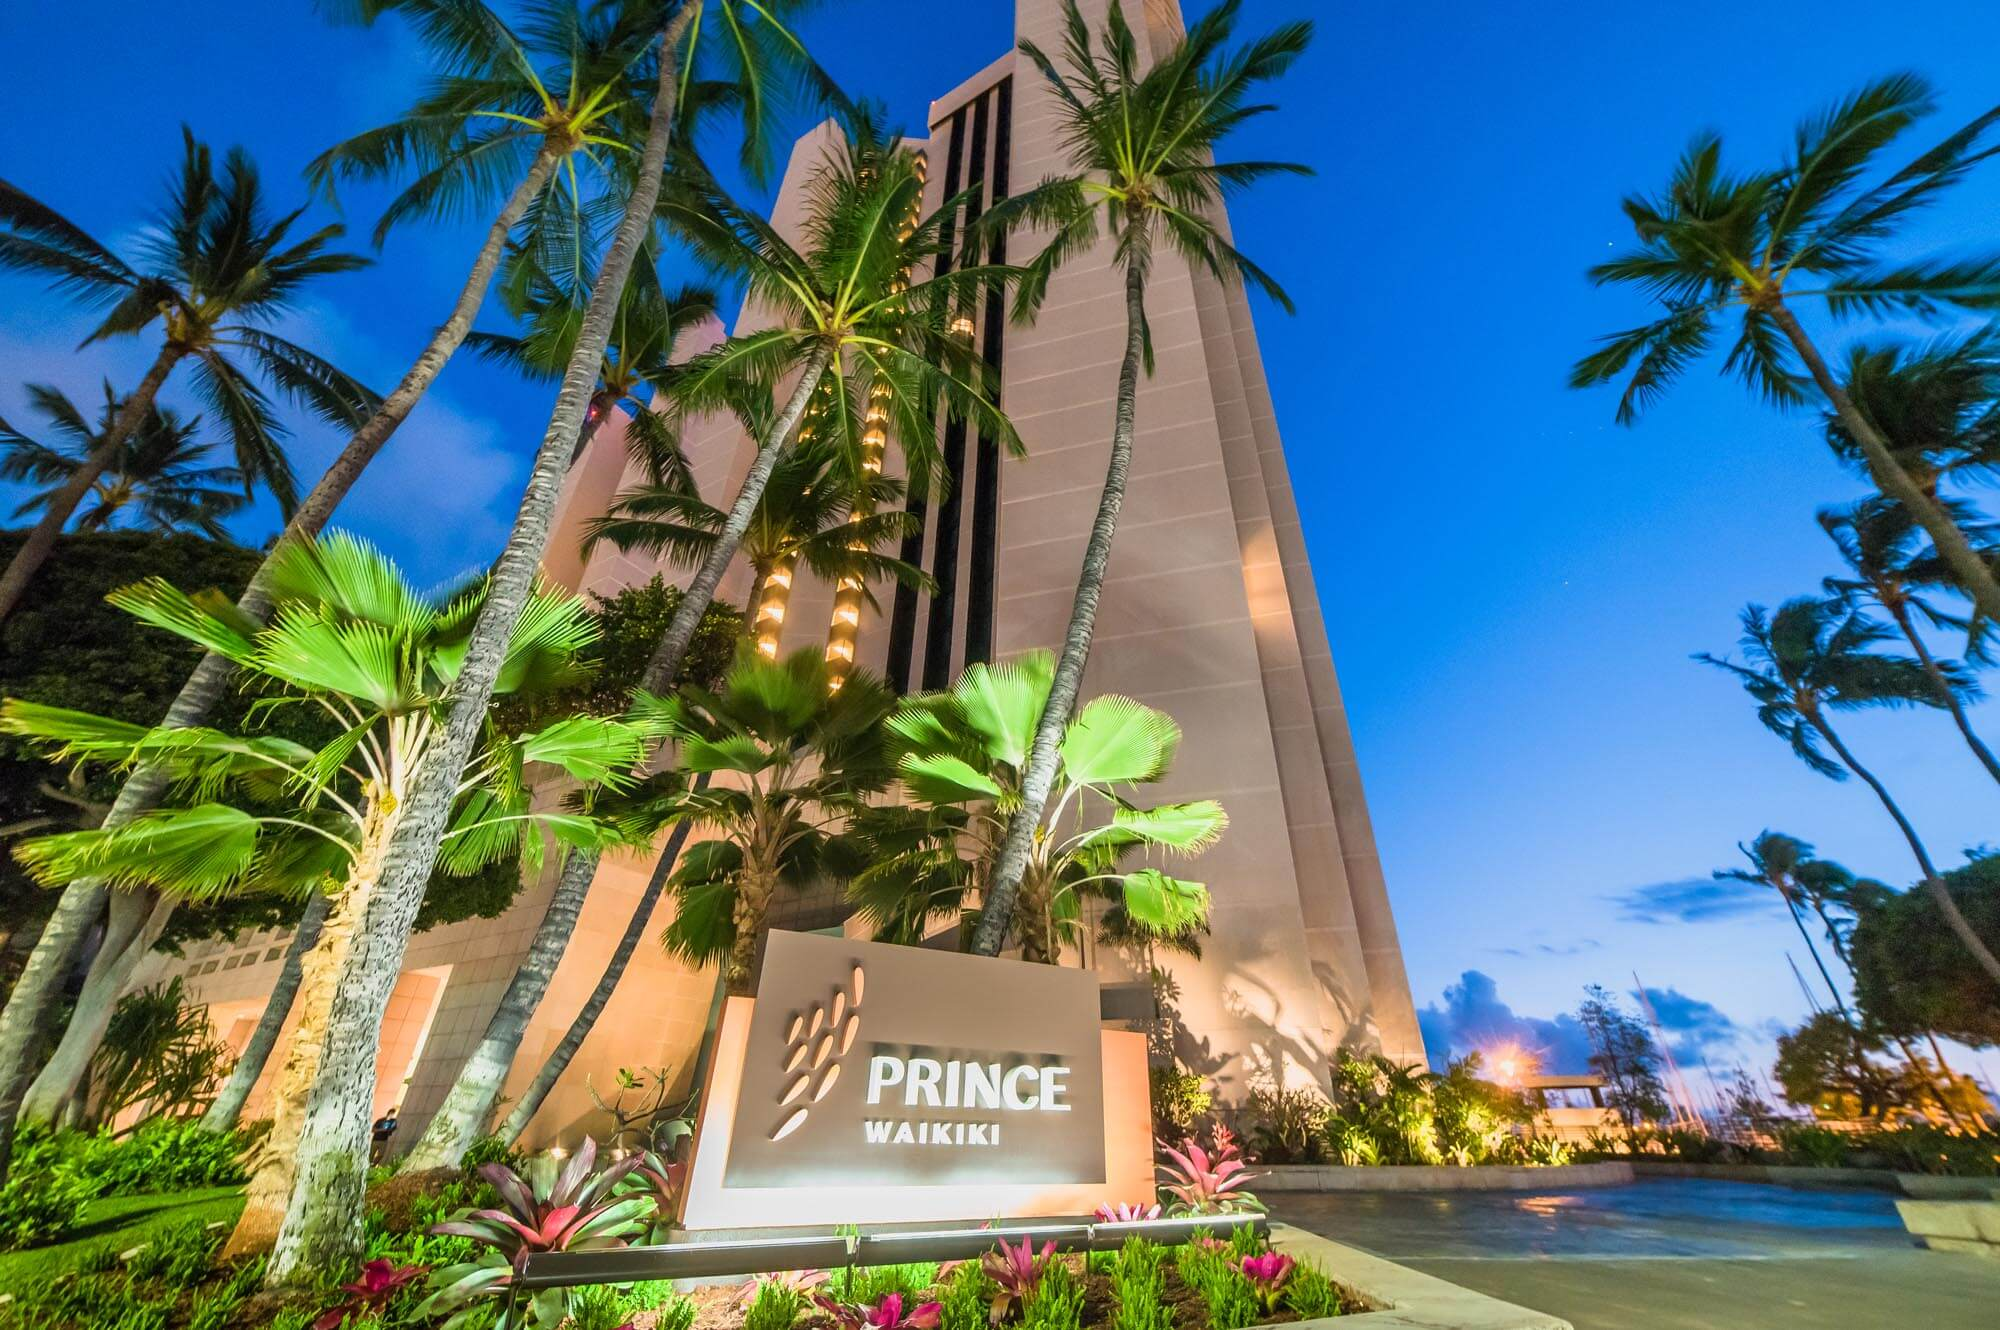 Luxury resort in Hawaii, Prince Waikiki, selects Cendyn